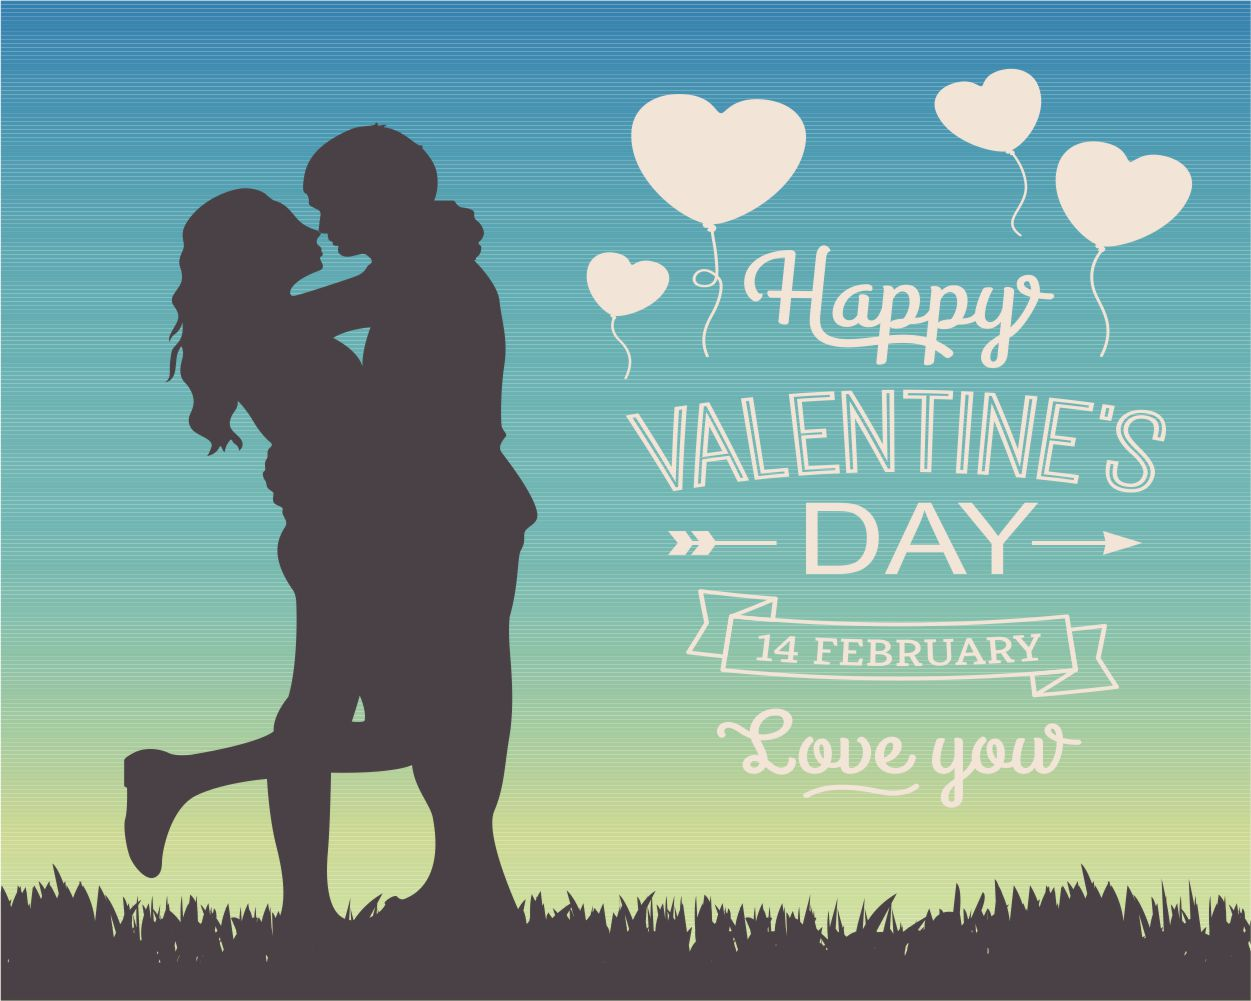 Valentines Day Quotes For Her Pleasing Valentines Day Quotes For Her Images  Valentines Day Quotes For